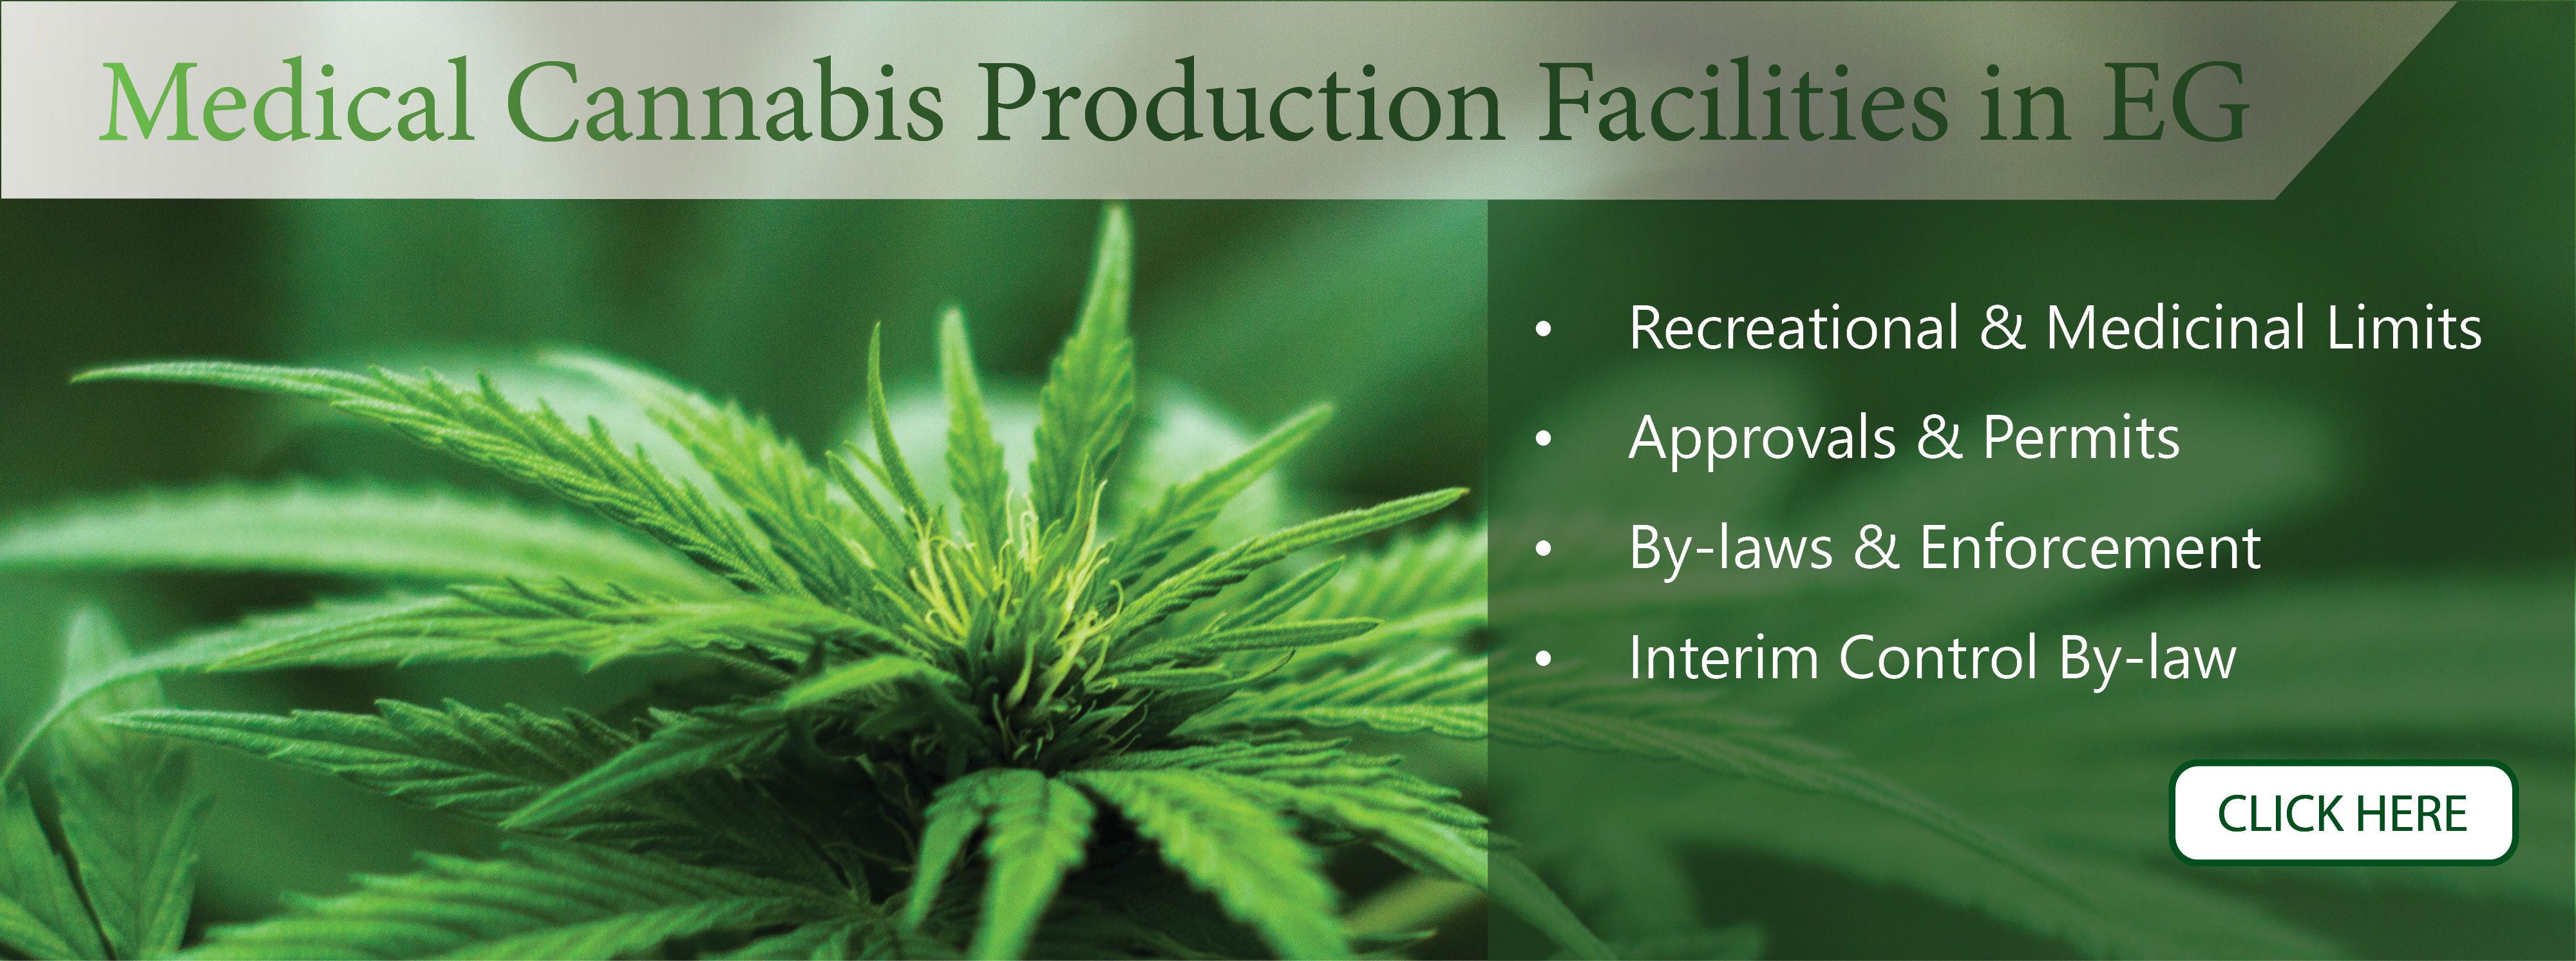 Website Slideshow - Medical Cannabis Production